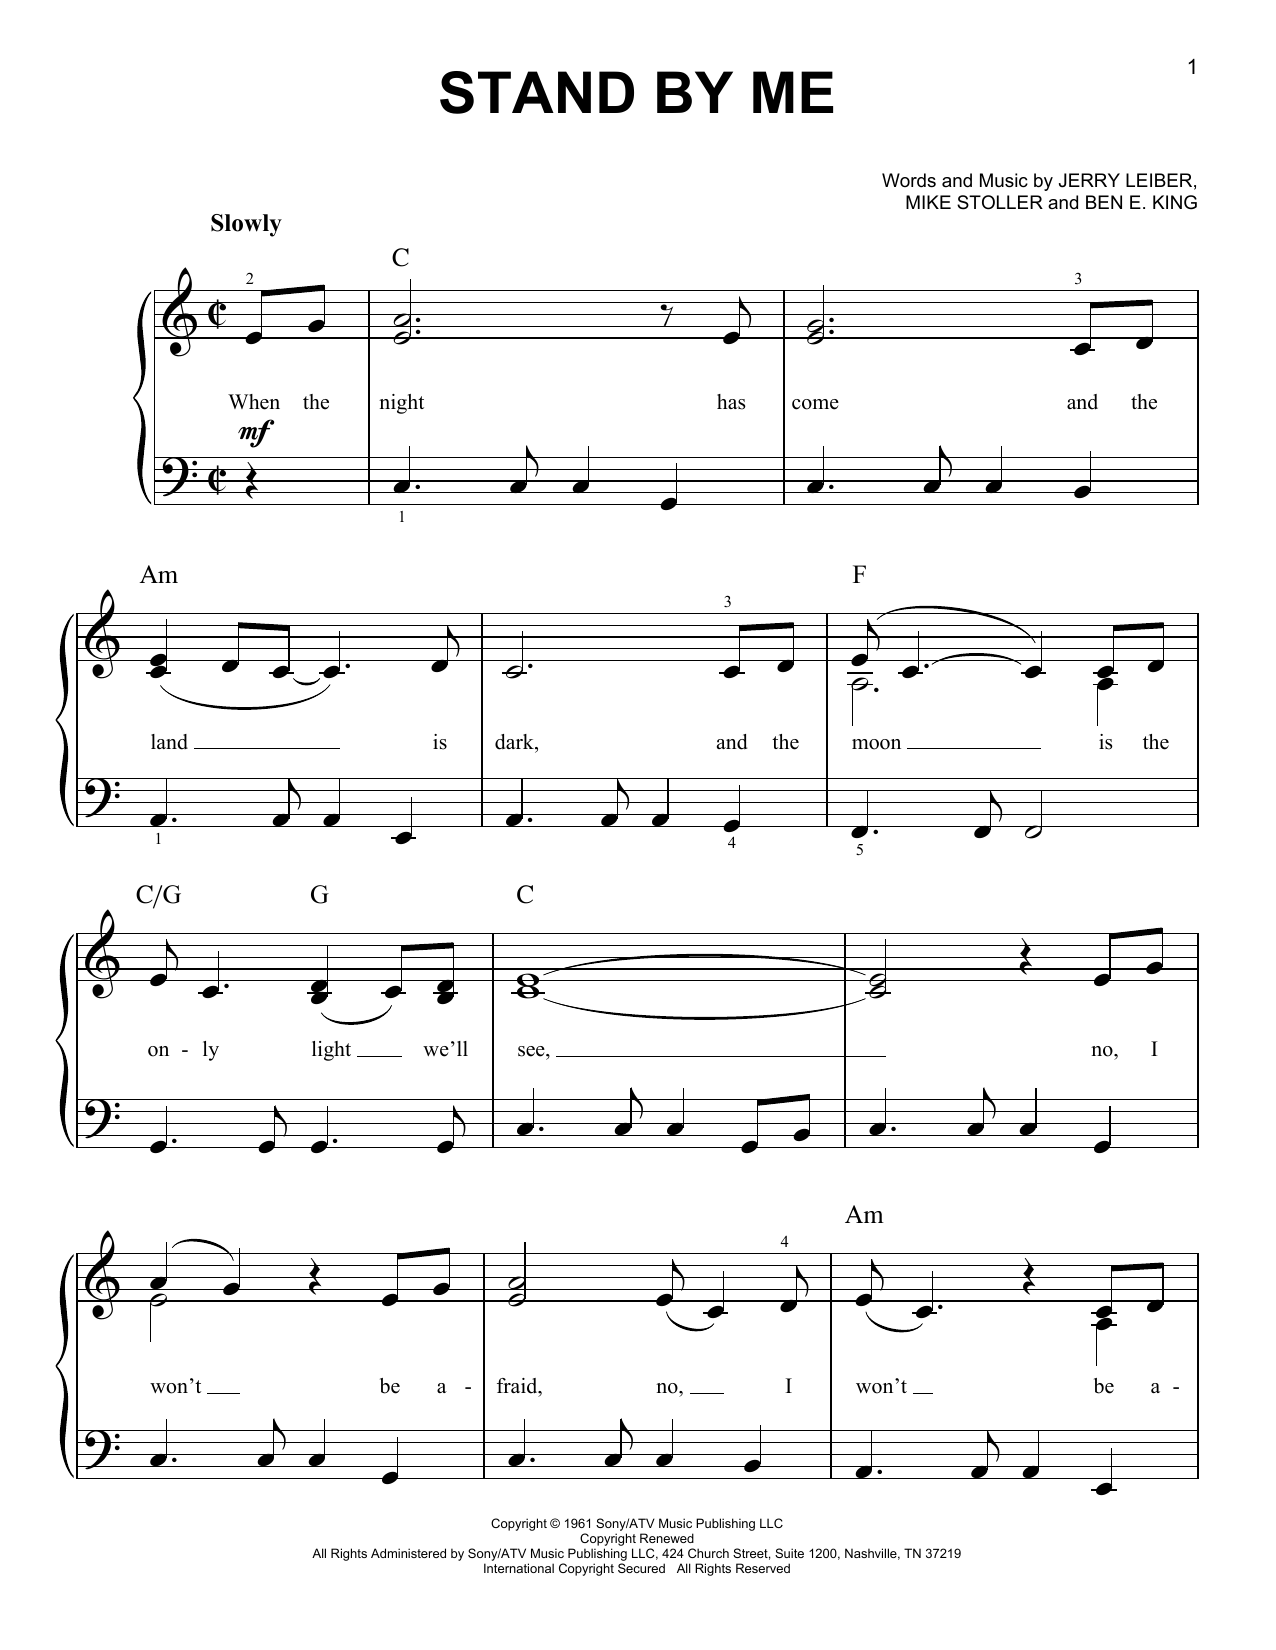 Ben E  King 'Stand By Me' Sheet Music Notes, Chords   Download Printable  Trumpet - SKU: 191375